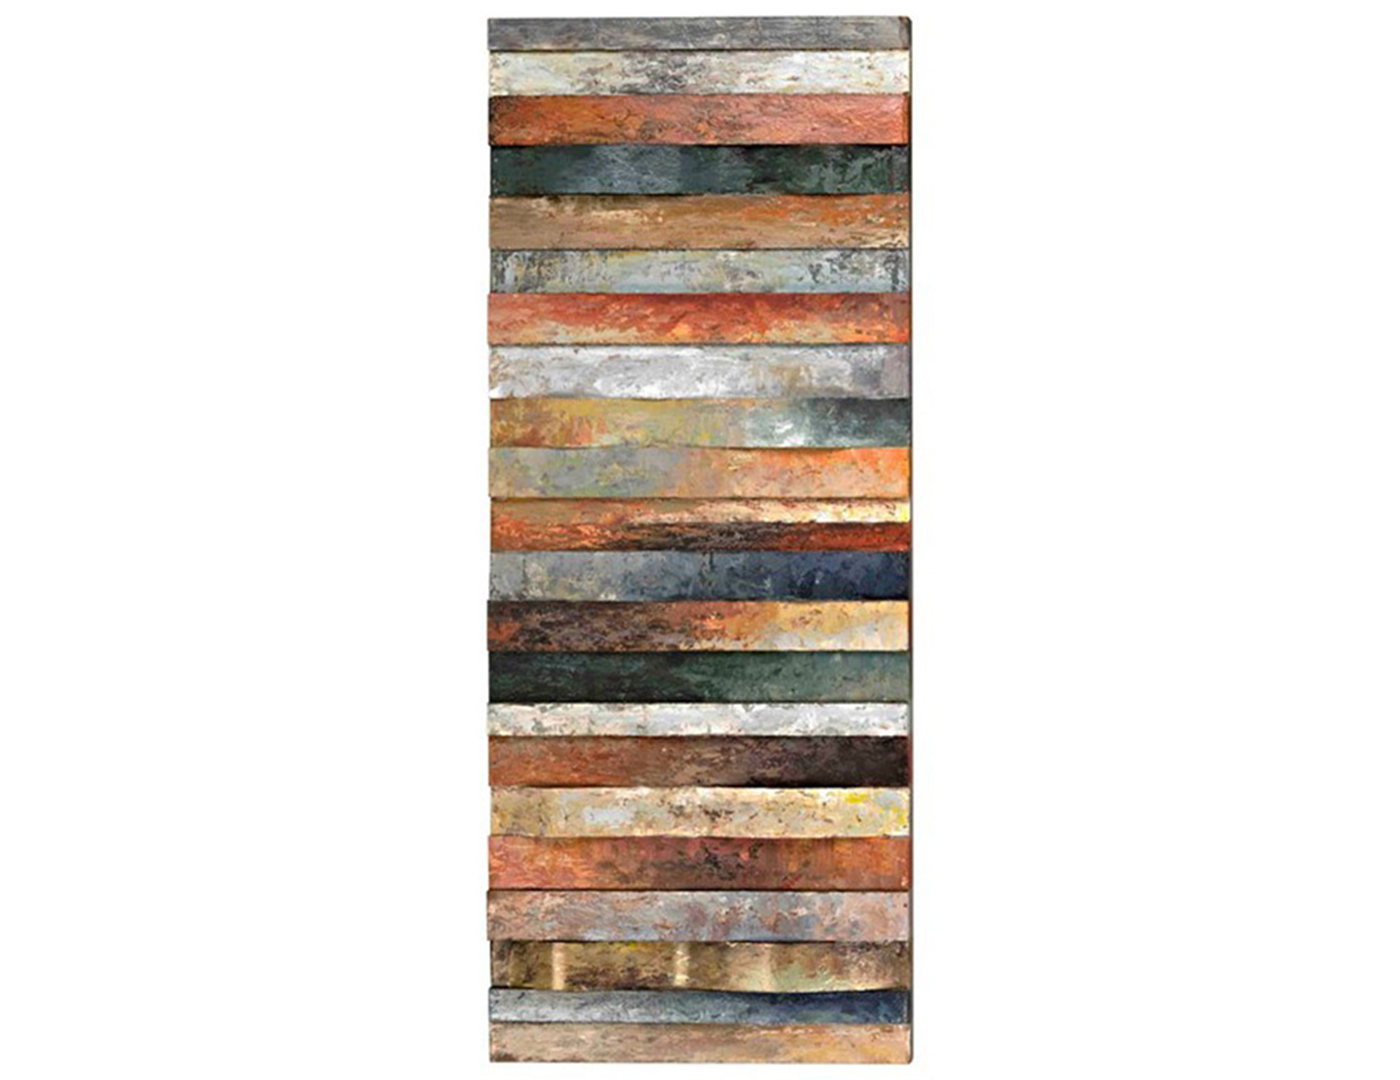 "Multi-Colored Curved Plank Design Art 20""W x 50""H"